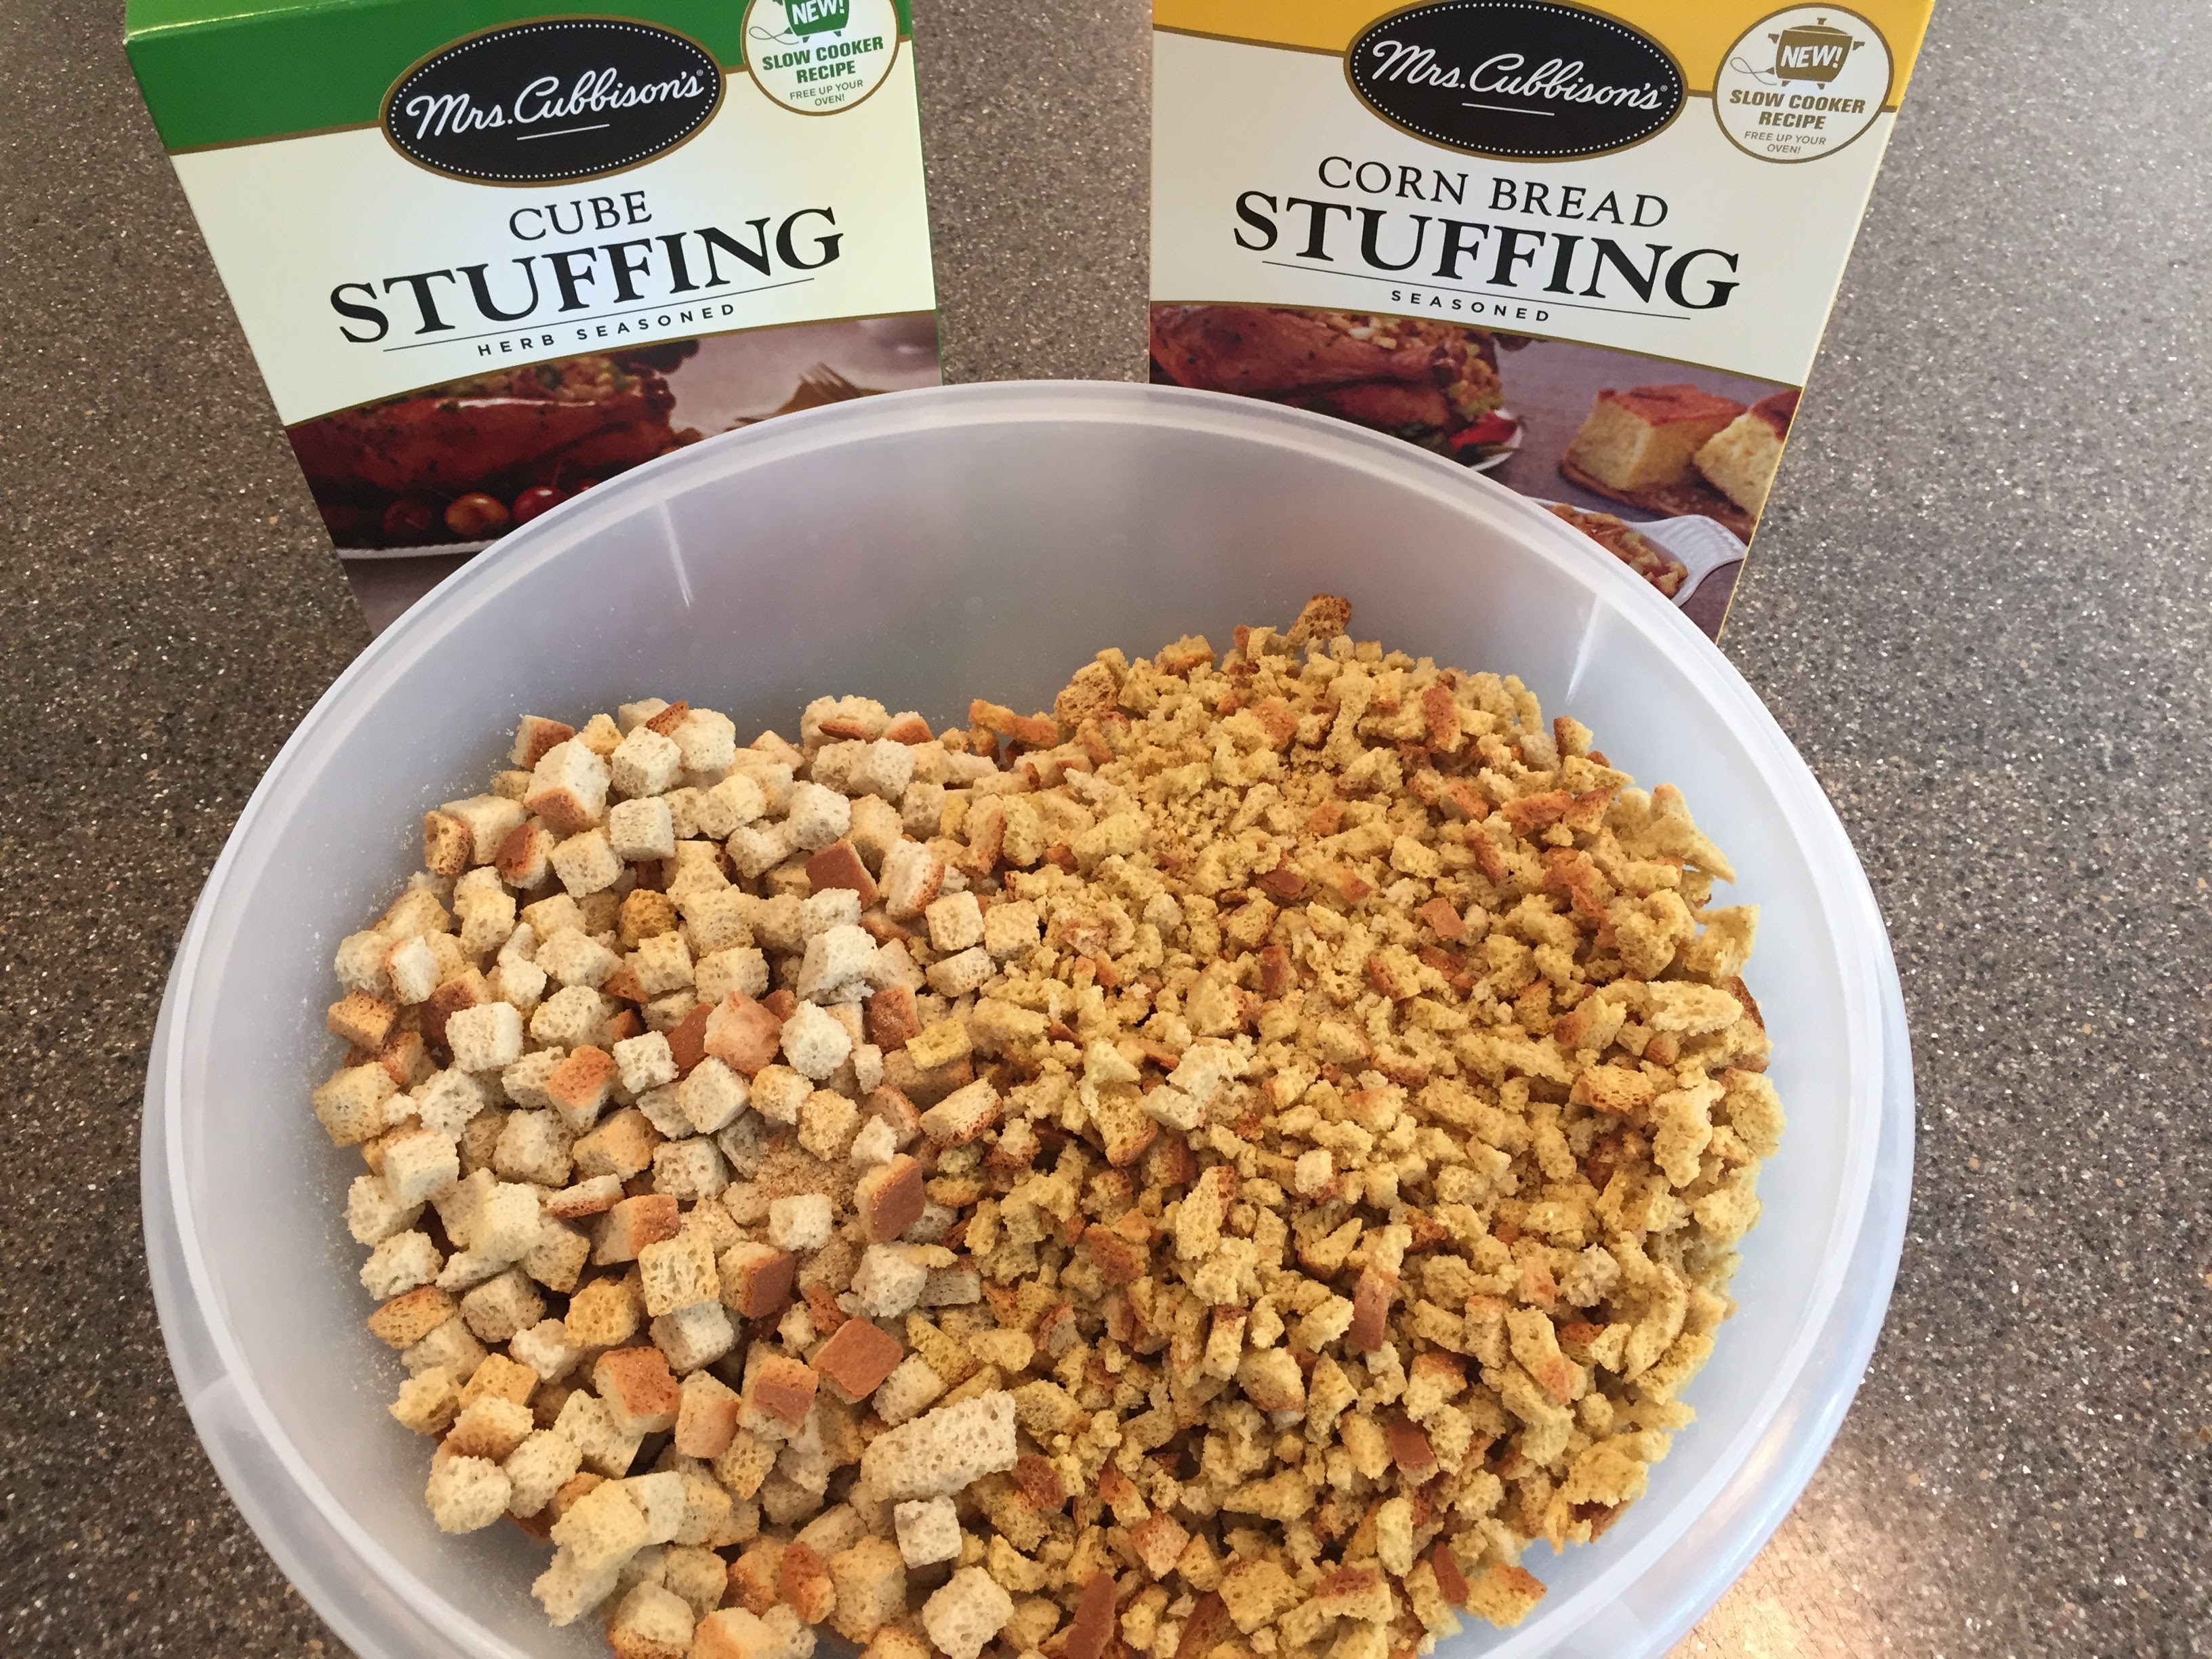 Cornbread stuffing combined with seasoned bread crumbs for stuffing with sausage recipe